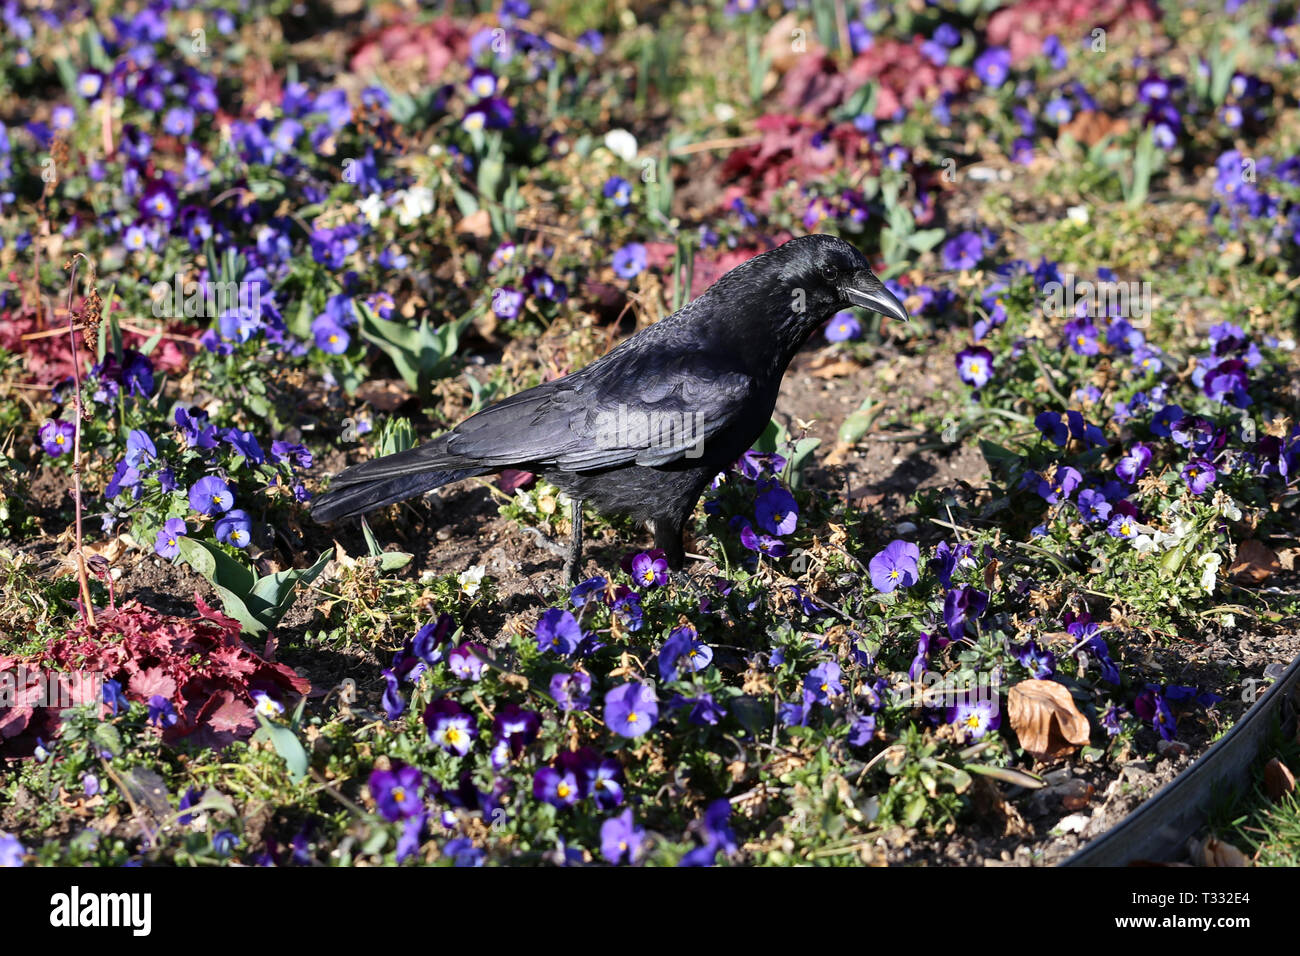 Black raven bird walking on a flower bed in Nyon, Switzerland. In the photo you see the bird, its shadow, plenty of colorful pansy flowers and grass. - Stock Image